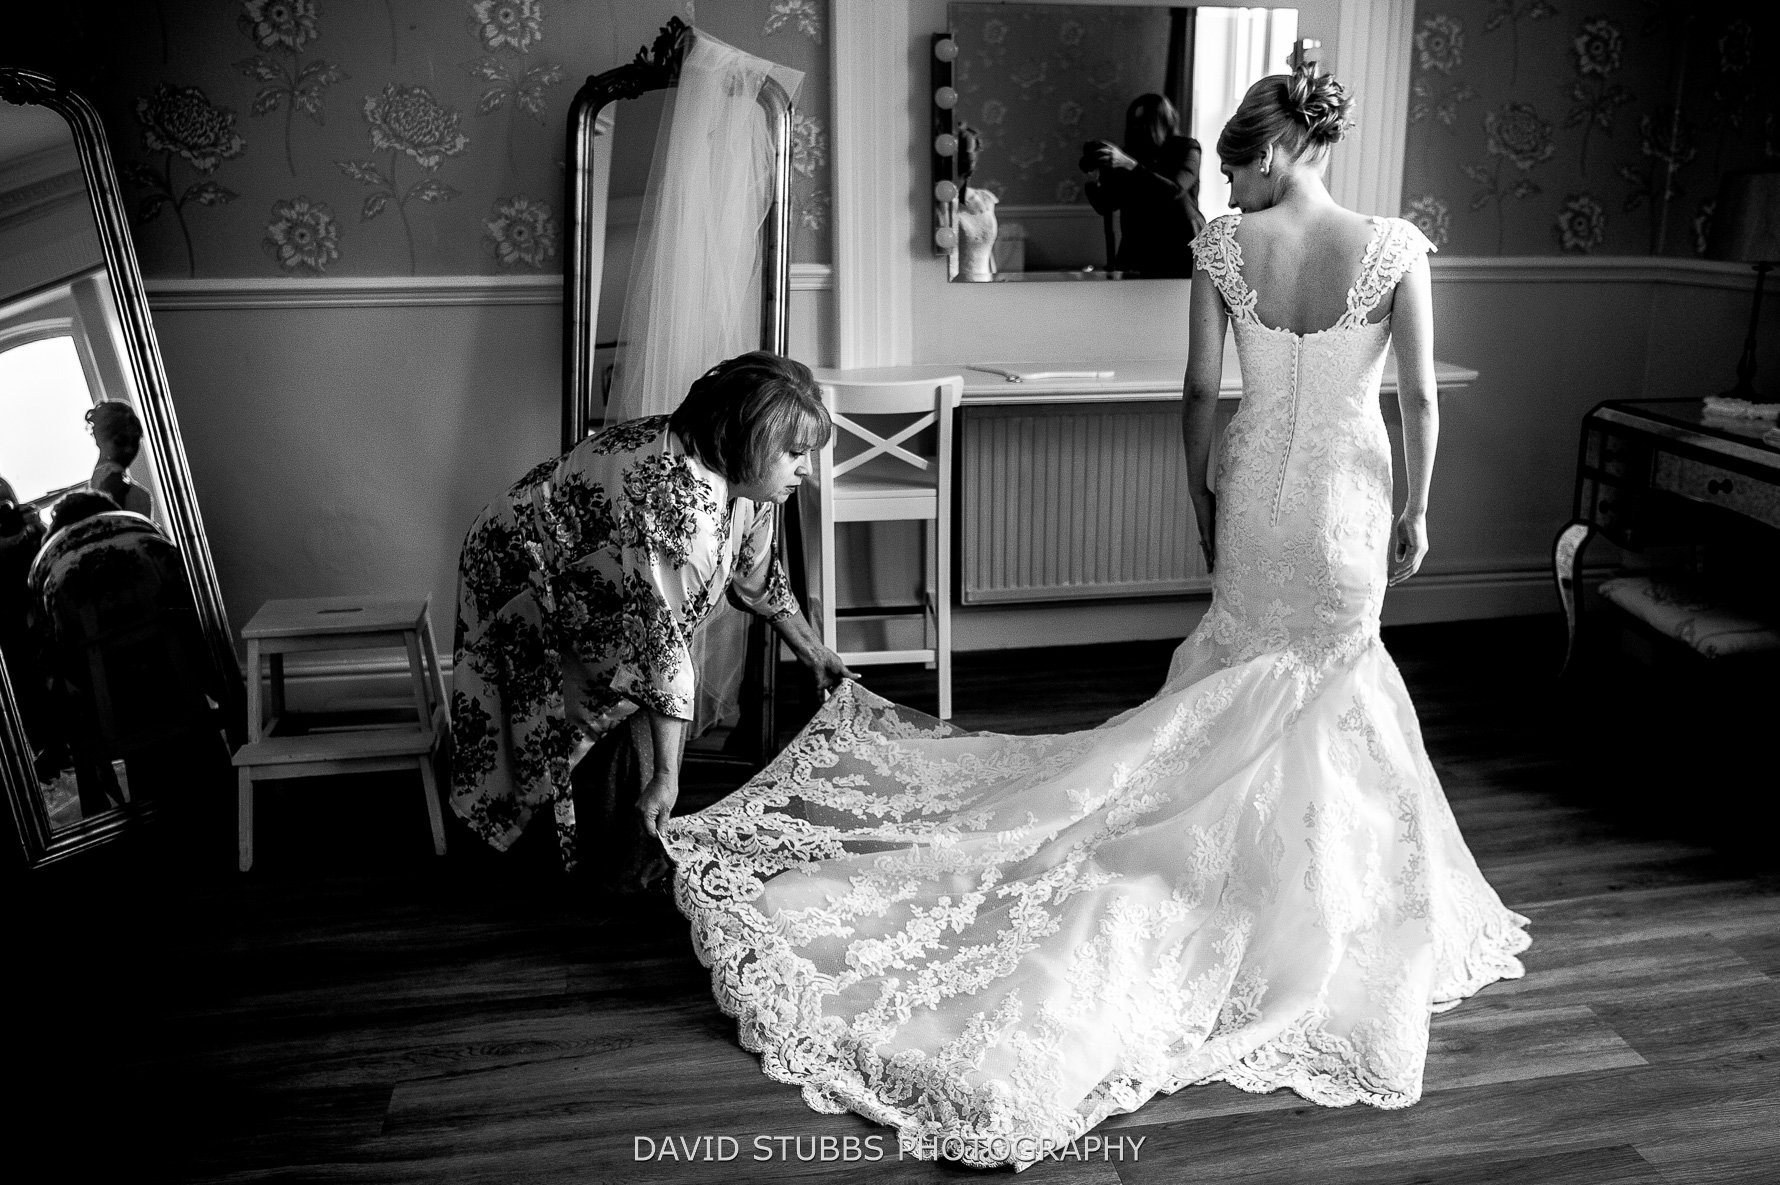 gettign wedding dress on photo